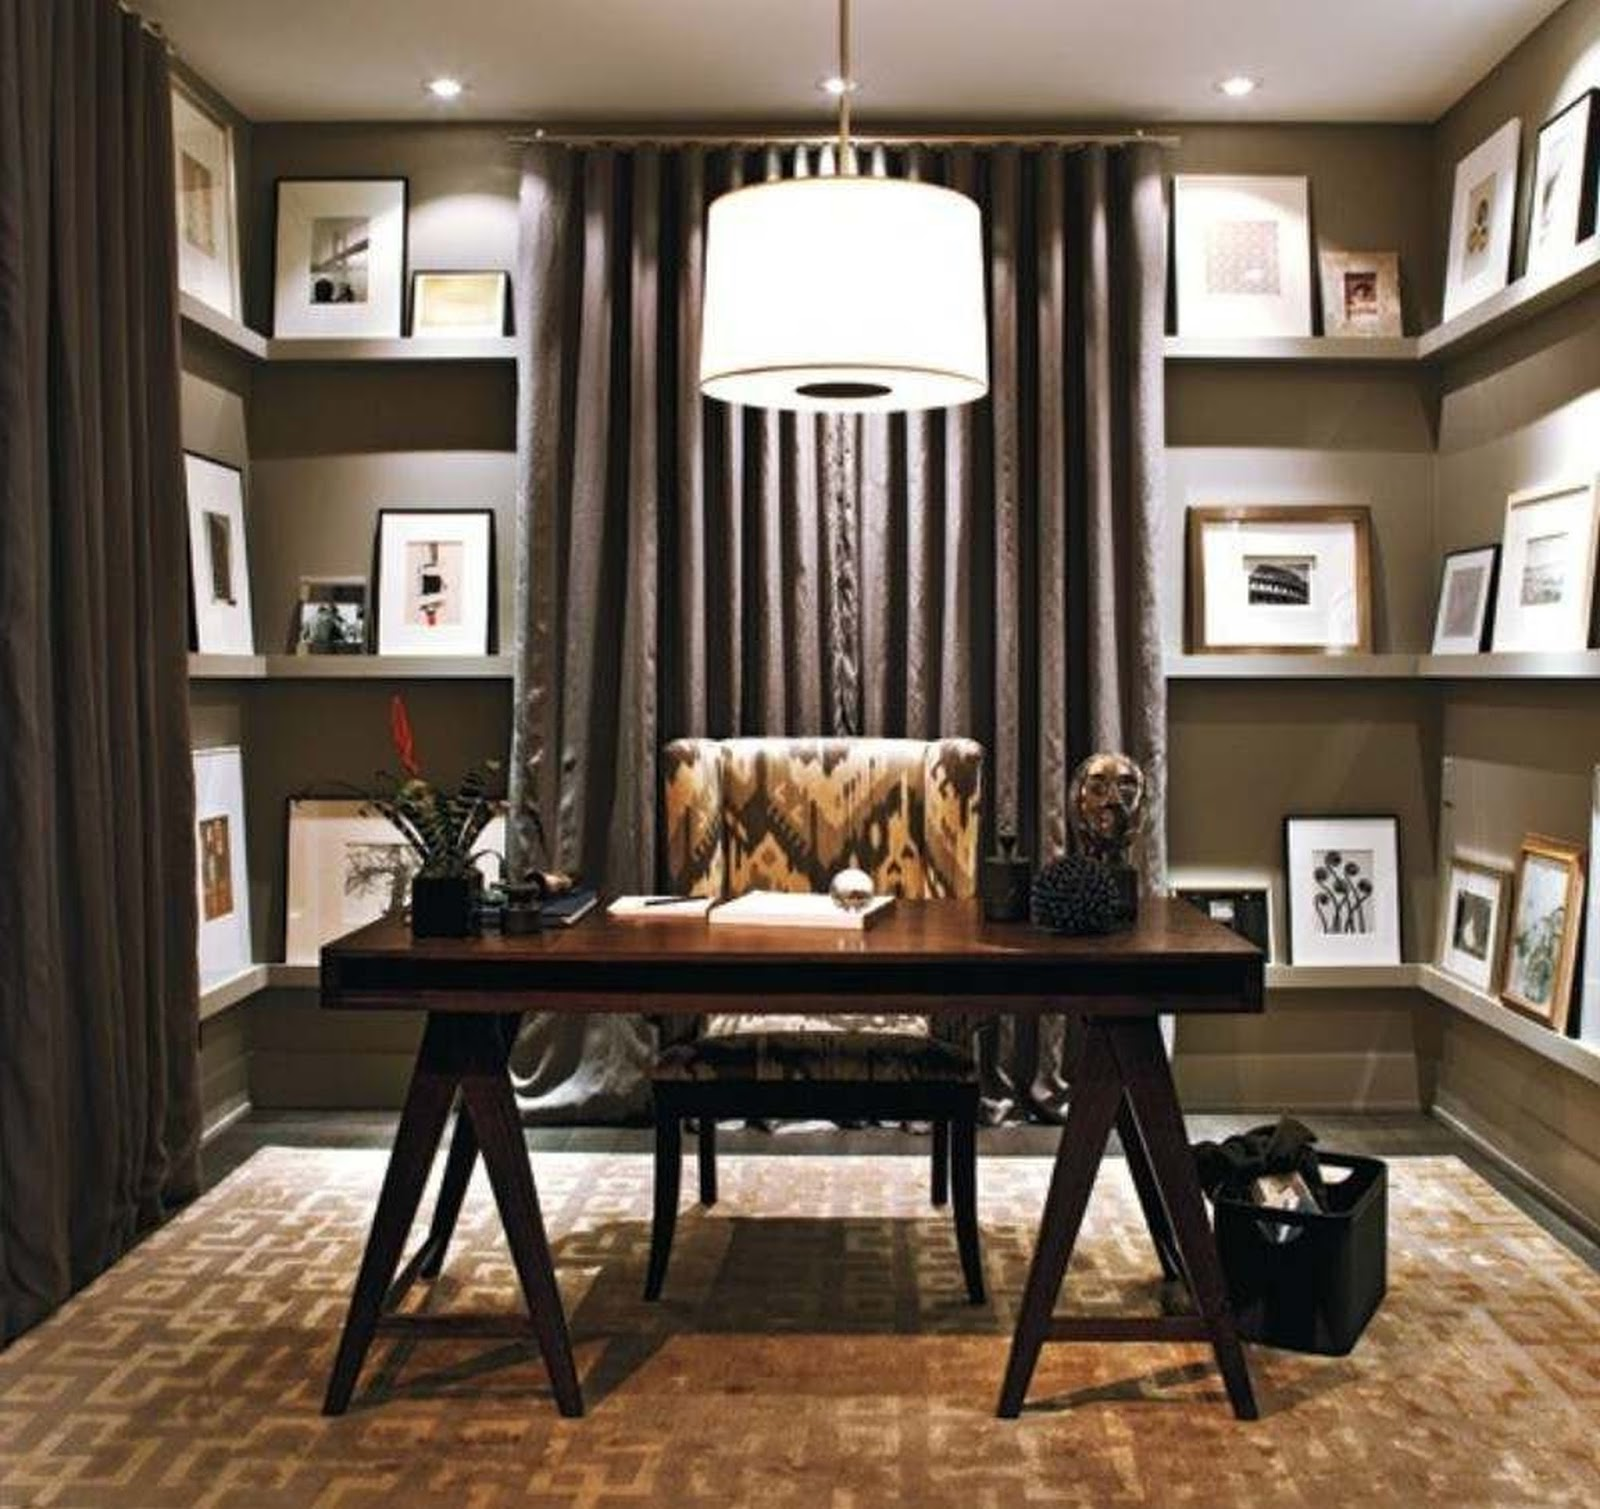 5 Tips How To Decorating An Artistic Home Office